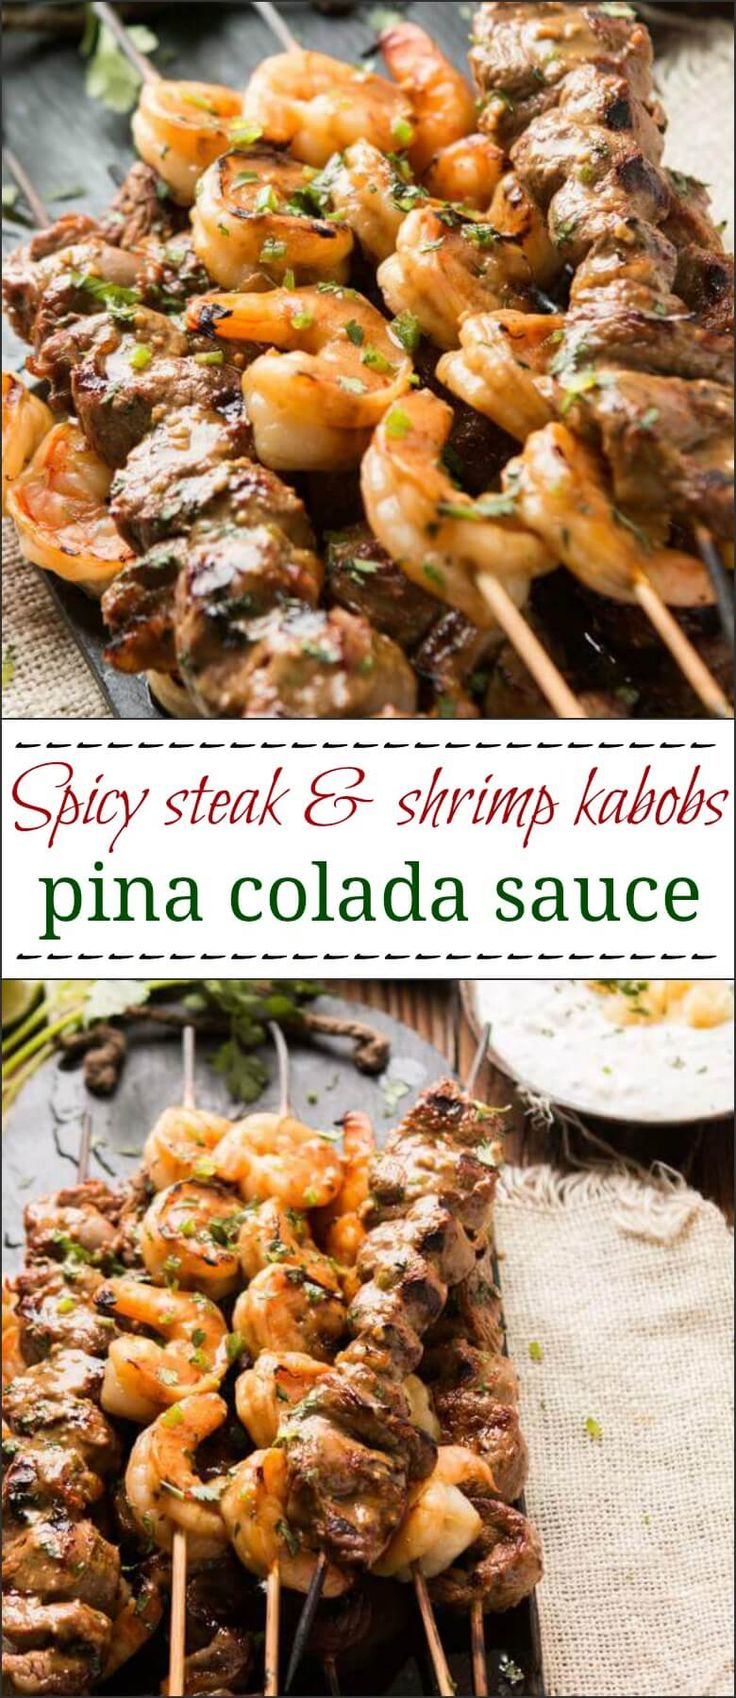 Fire up the grill for these spicy steak and shrimp kabobs with pina colada sauce and you'll be the king of any BBQ or potluck this summer.     via @ohsweetbasil